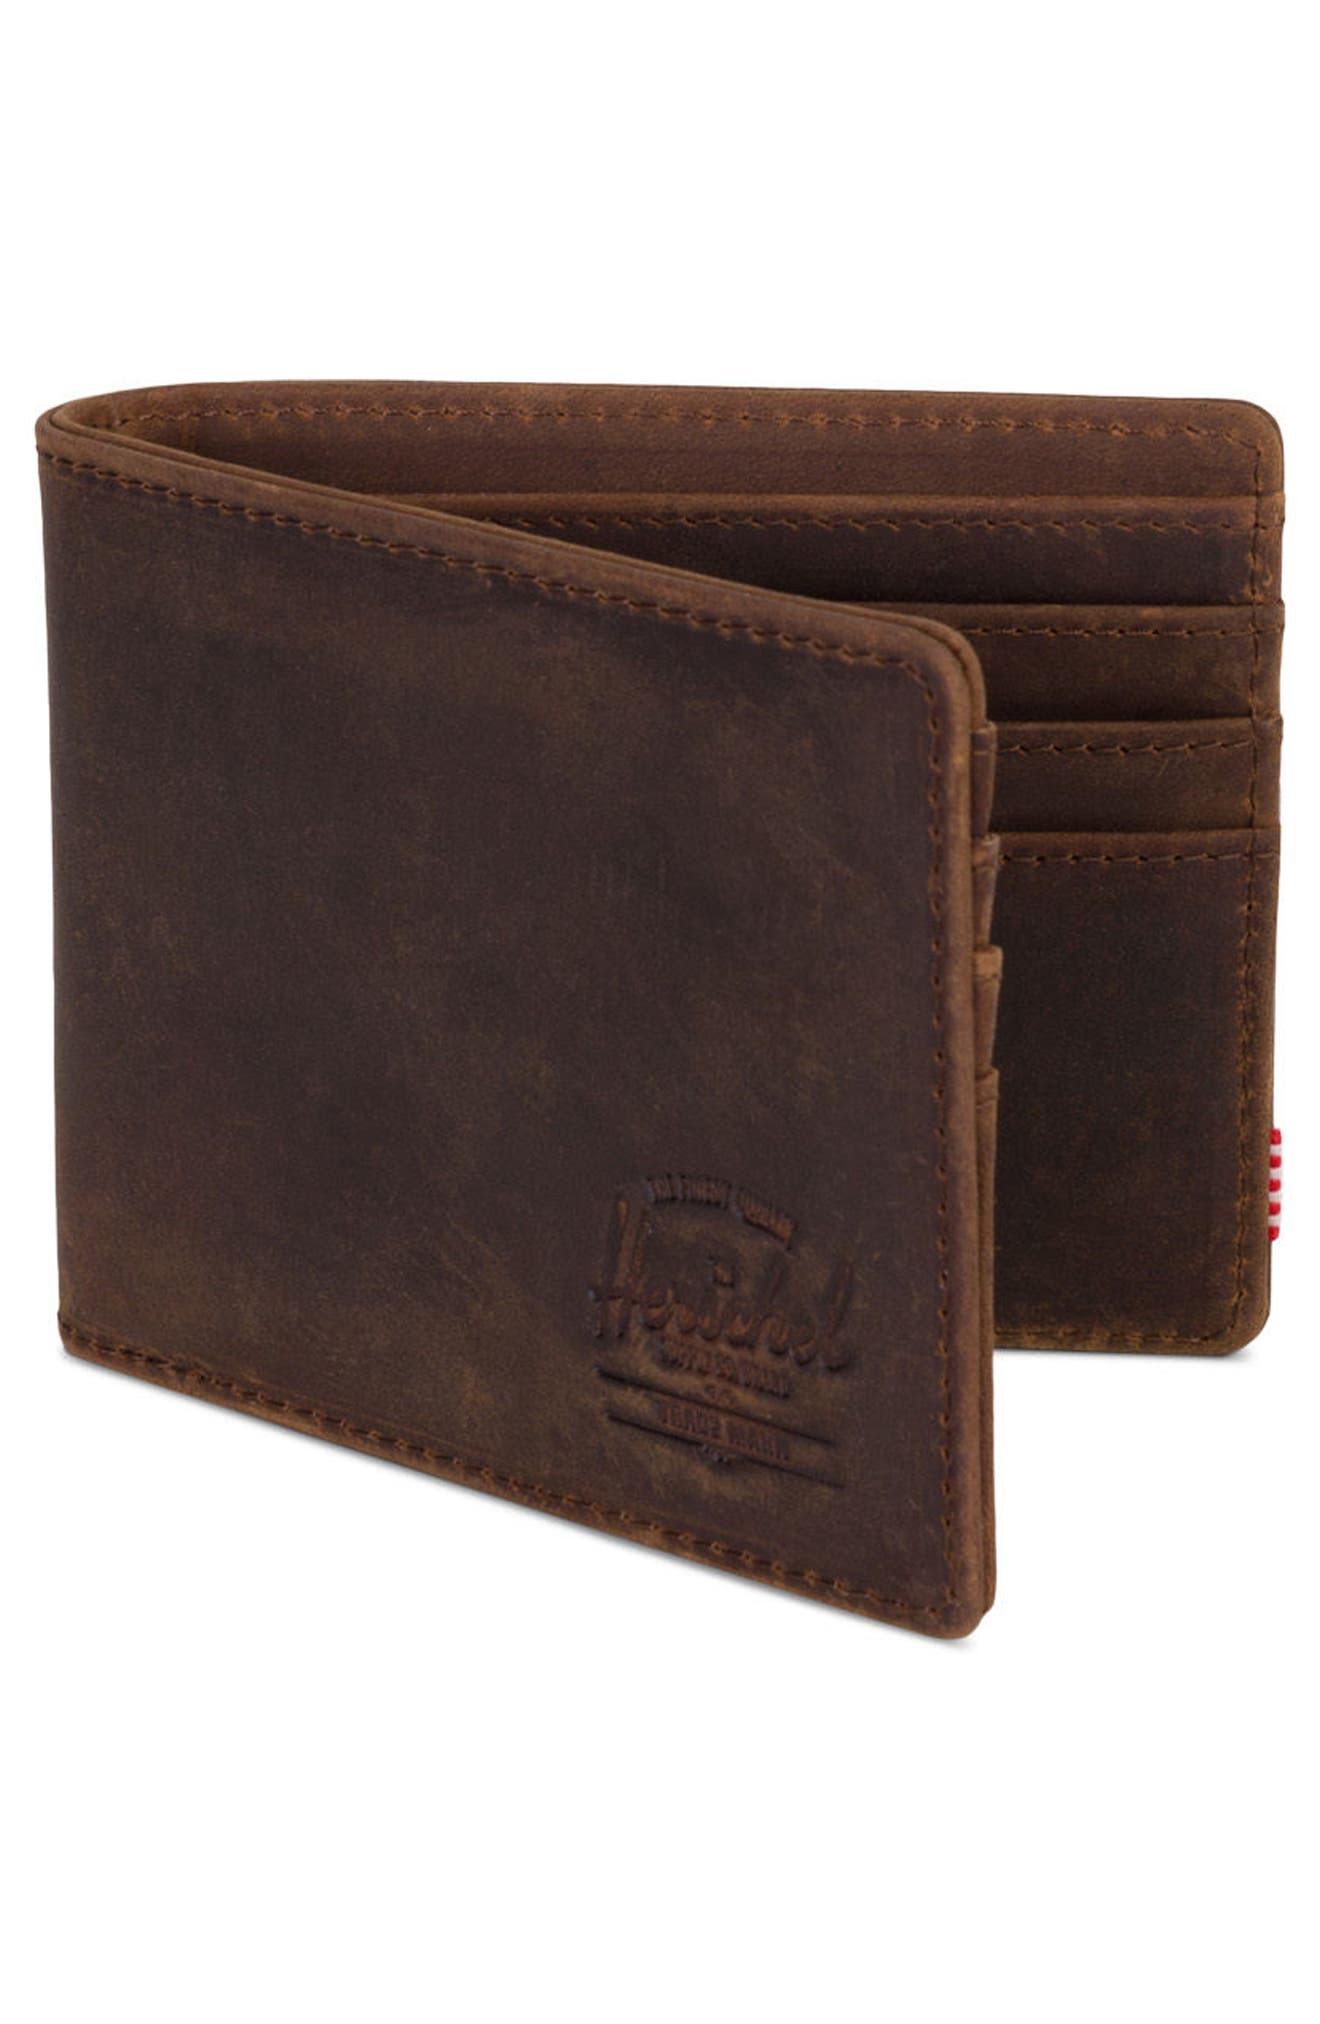 Roy Leather Wallet,                             Alternate thumbnail 2, color,                             210